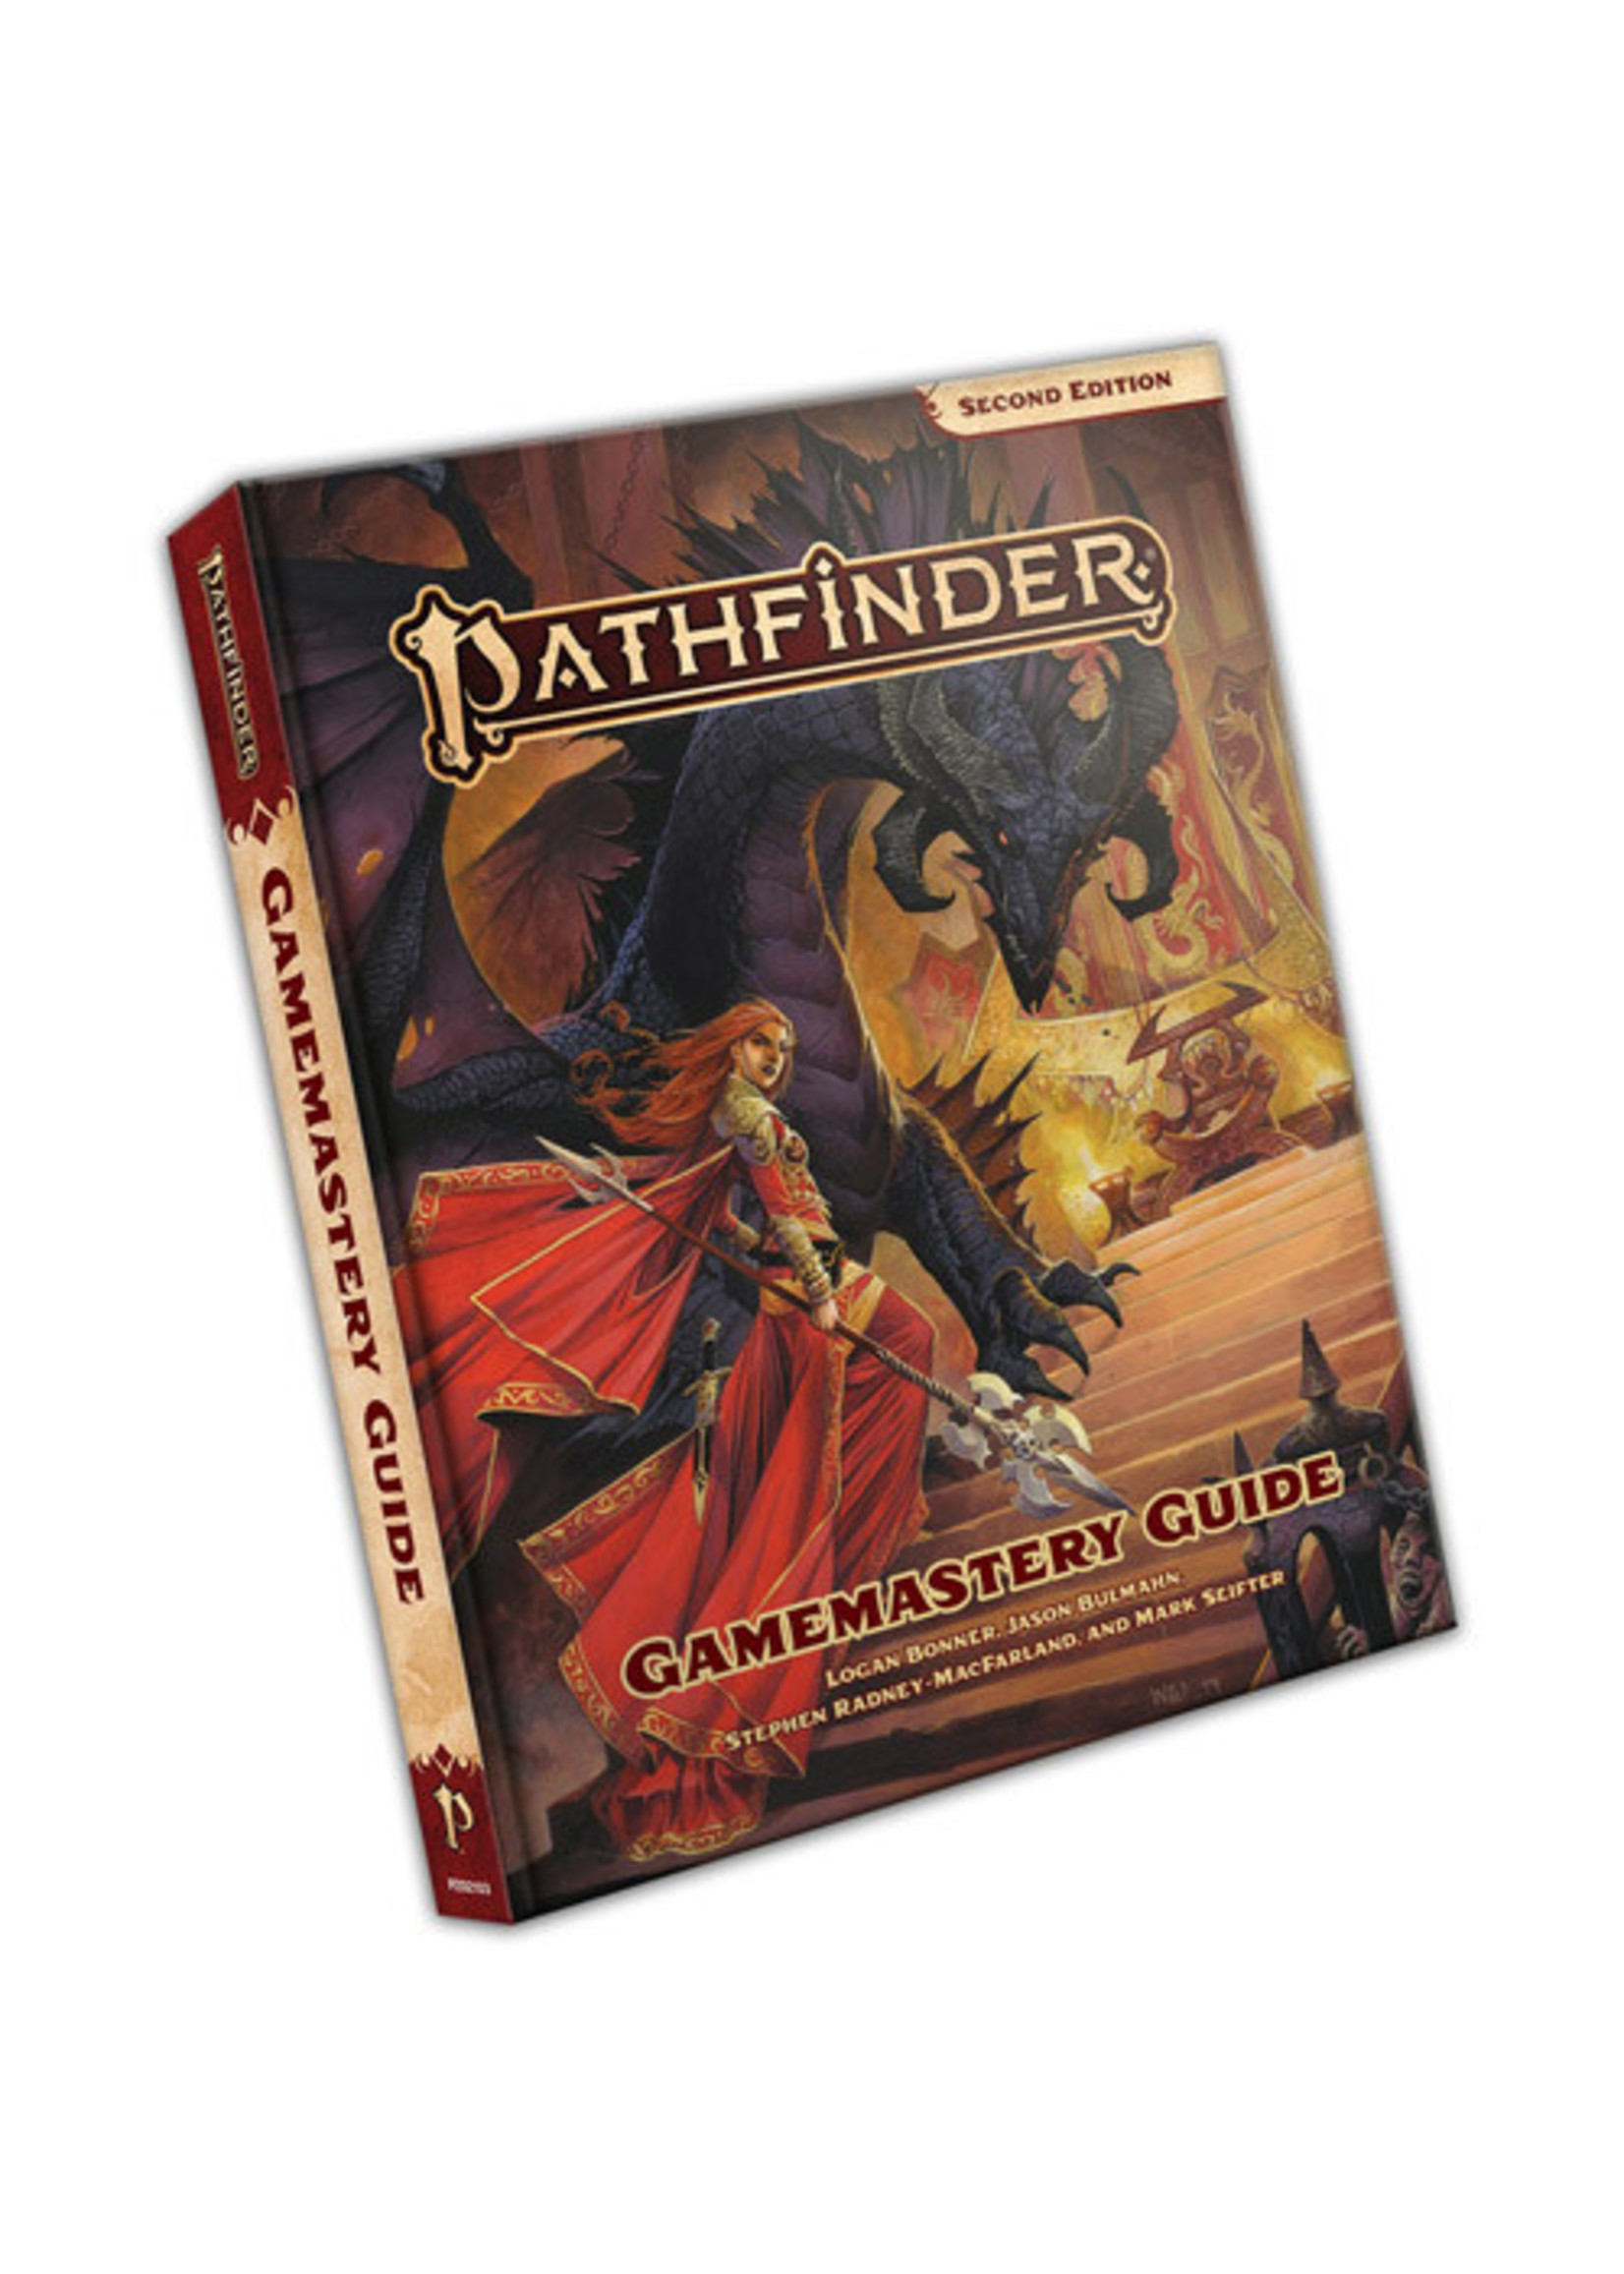 Pathfinder RPG: Gamemastery Guide Hardcover (P2)